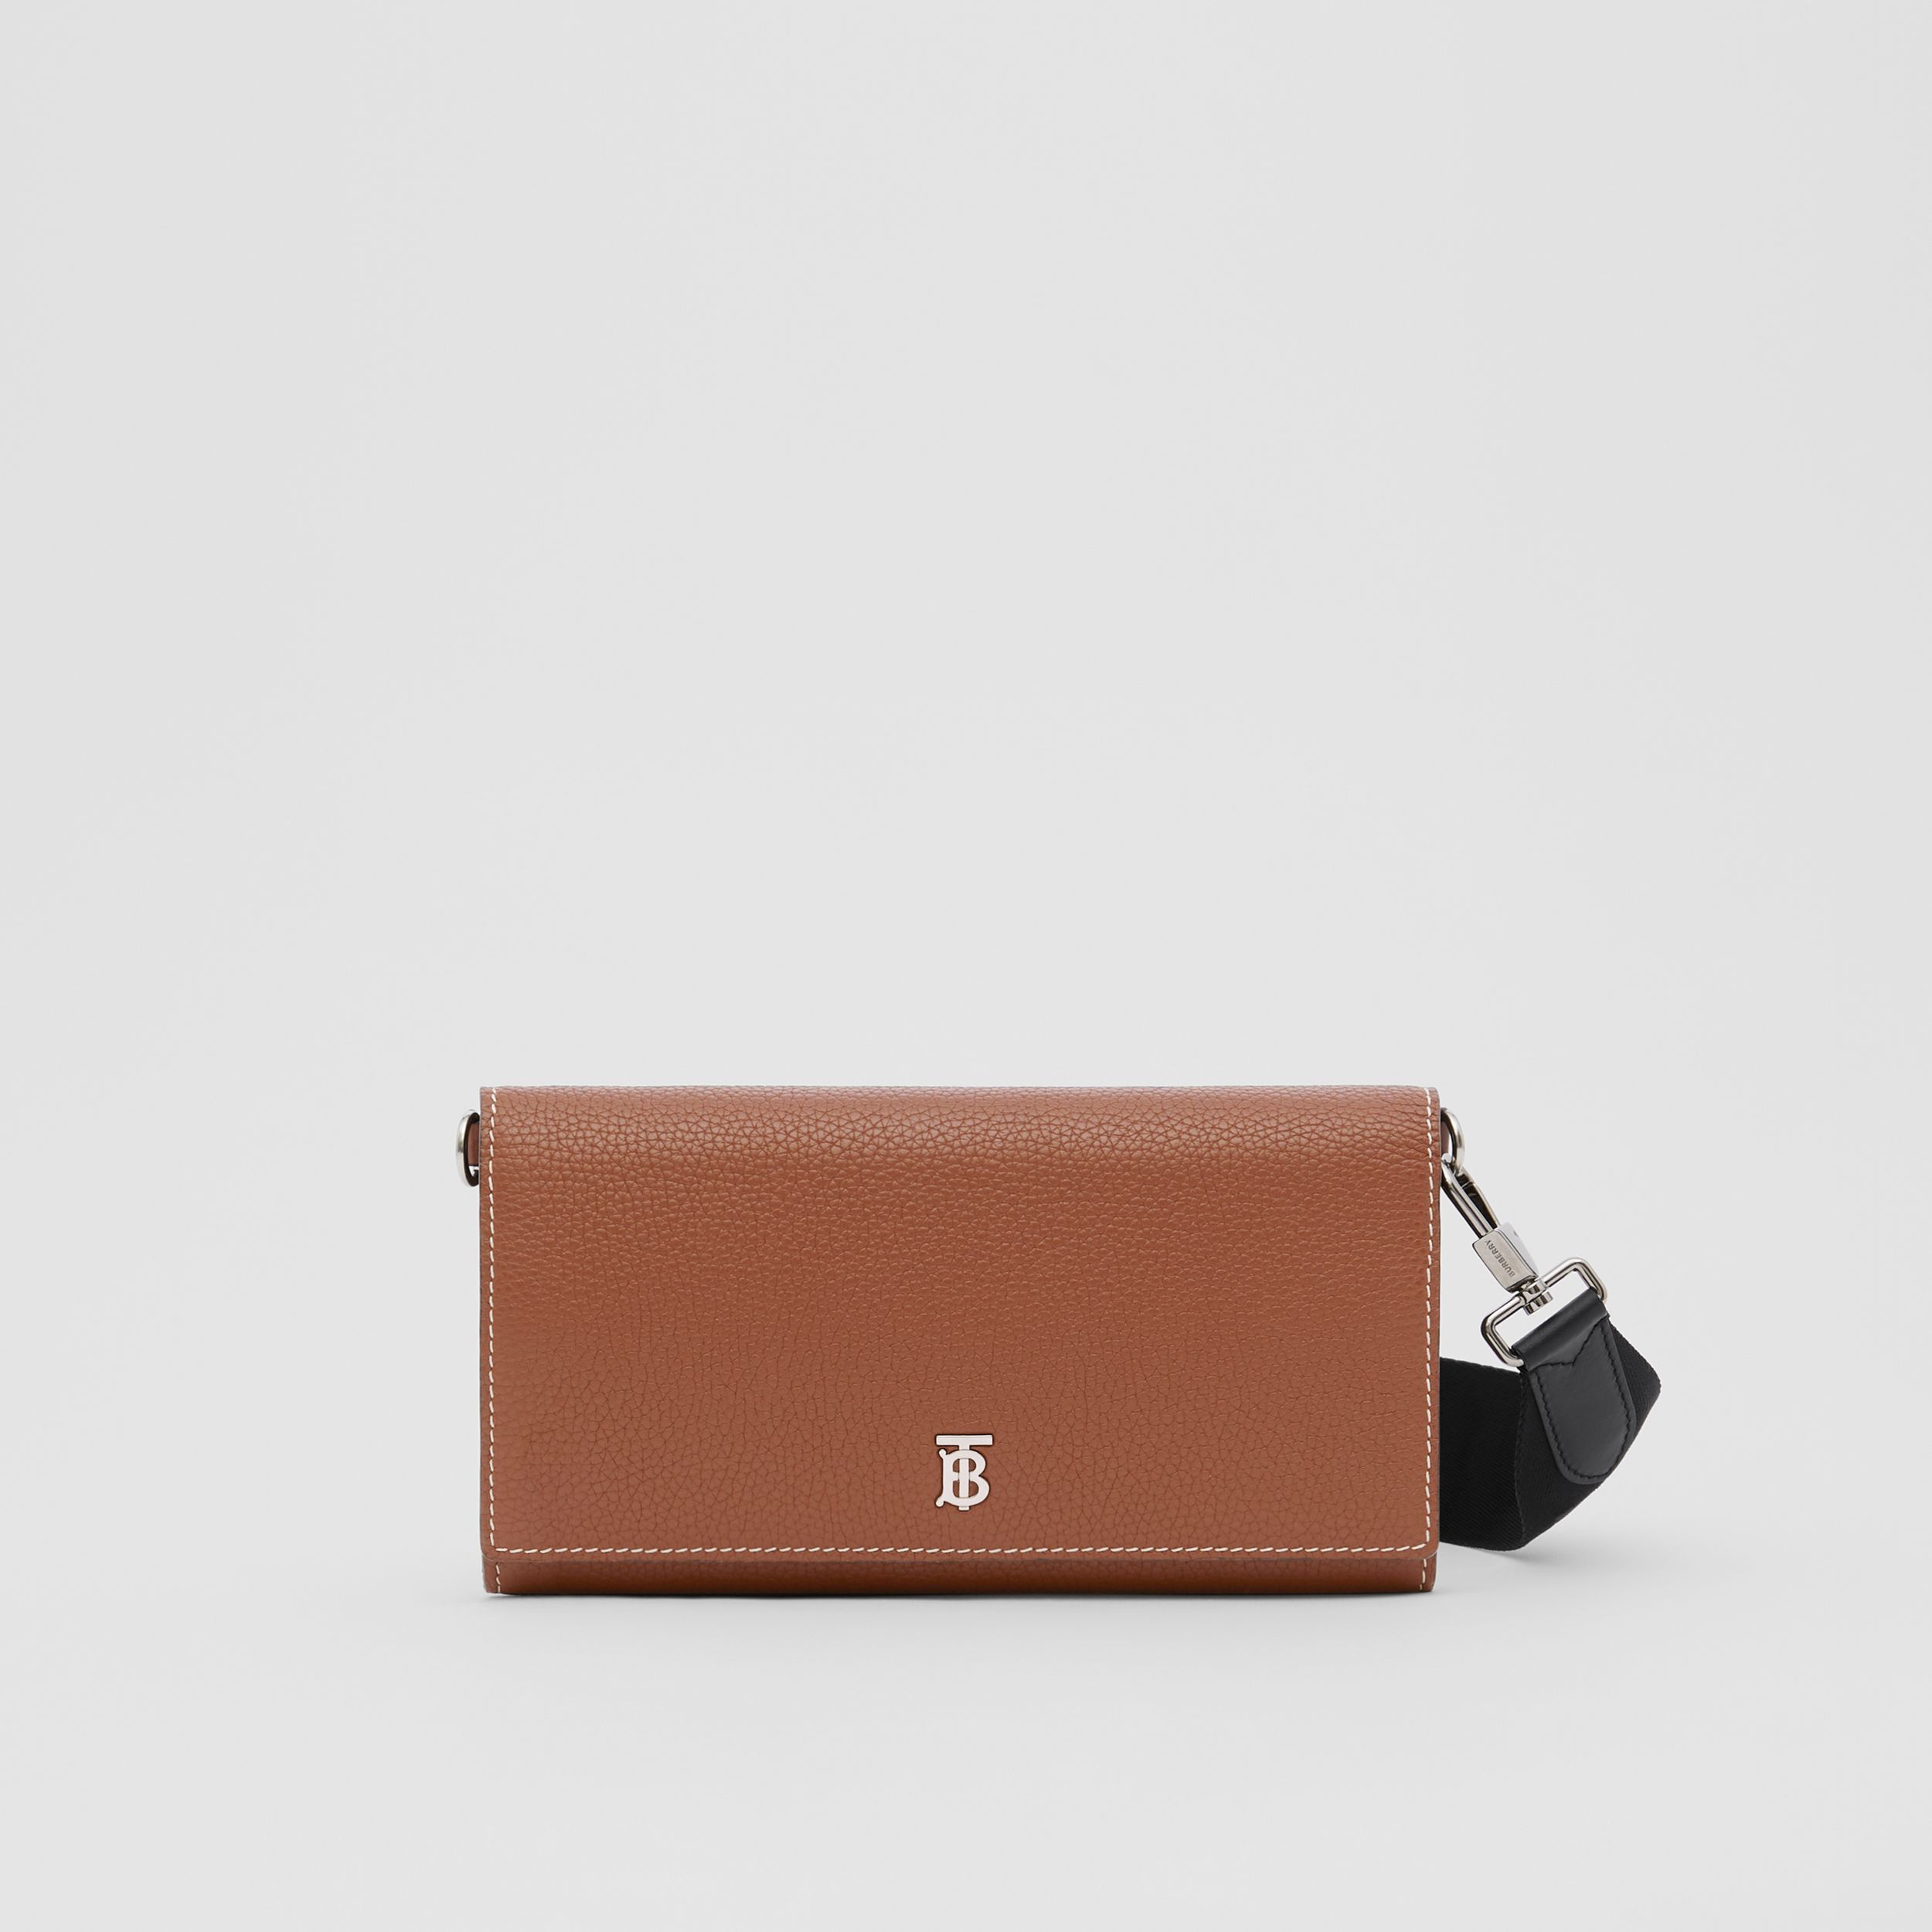 Grainy Leather Wallet with Detachable Strap in Tan | Burberry - 1